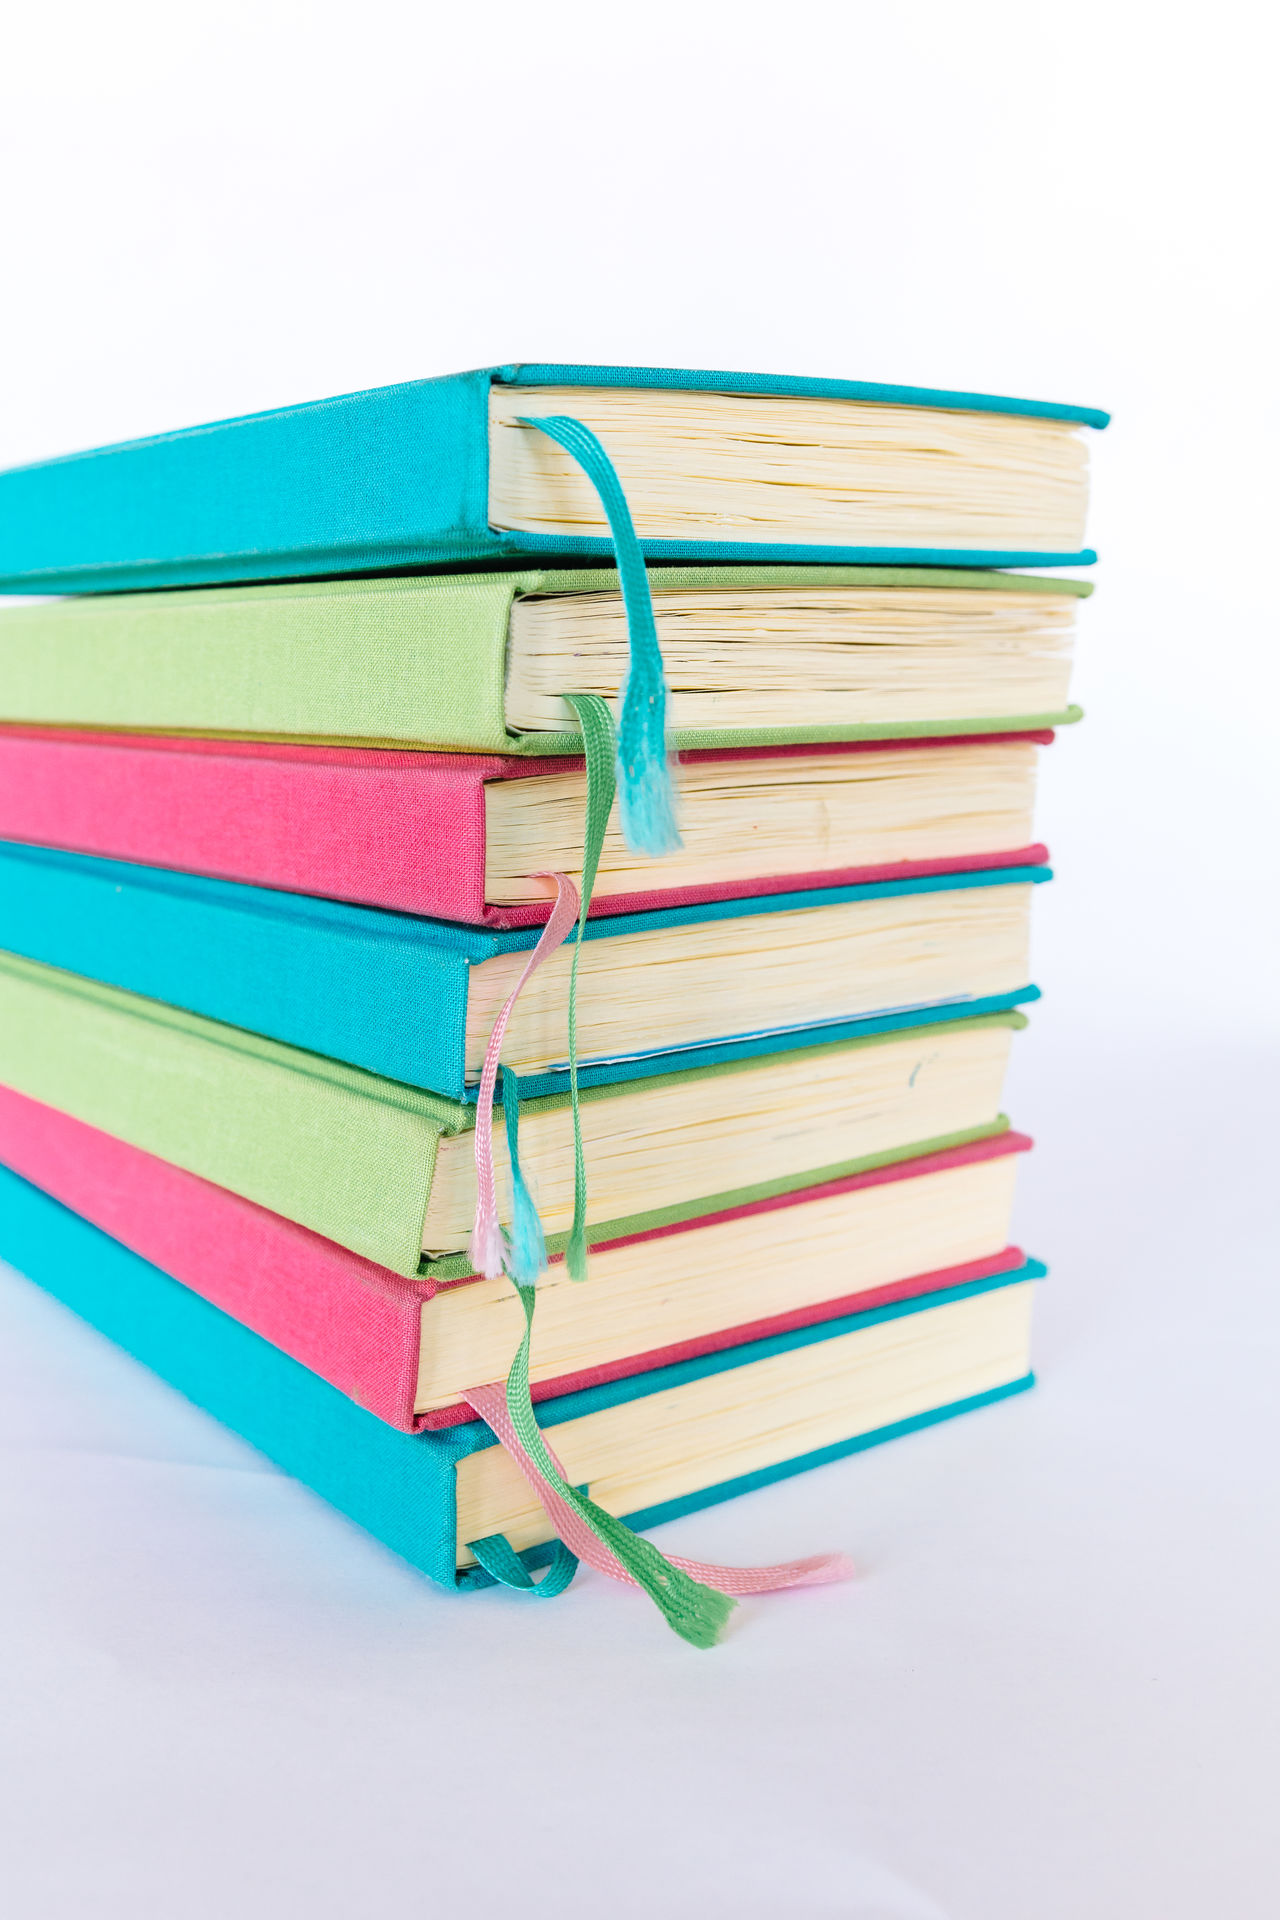 Colorful Books Blue Books Colorful Colors Cyan Education Educational Green Learning LearningEveryday Multi Colored No People Pink Pink Color Reading Reading Books Reading Time Stack Study Hard Study Time Studying White Background